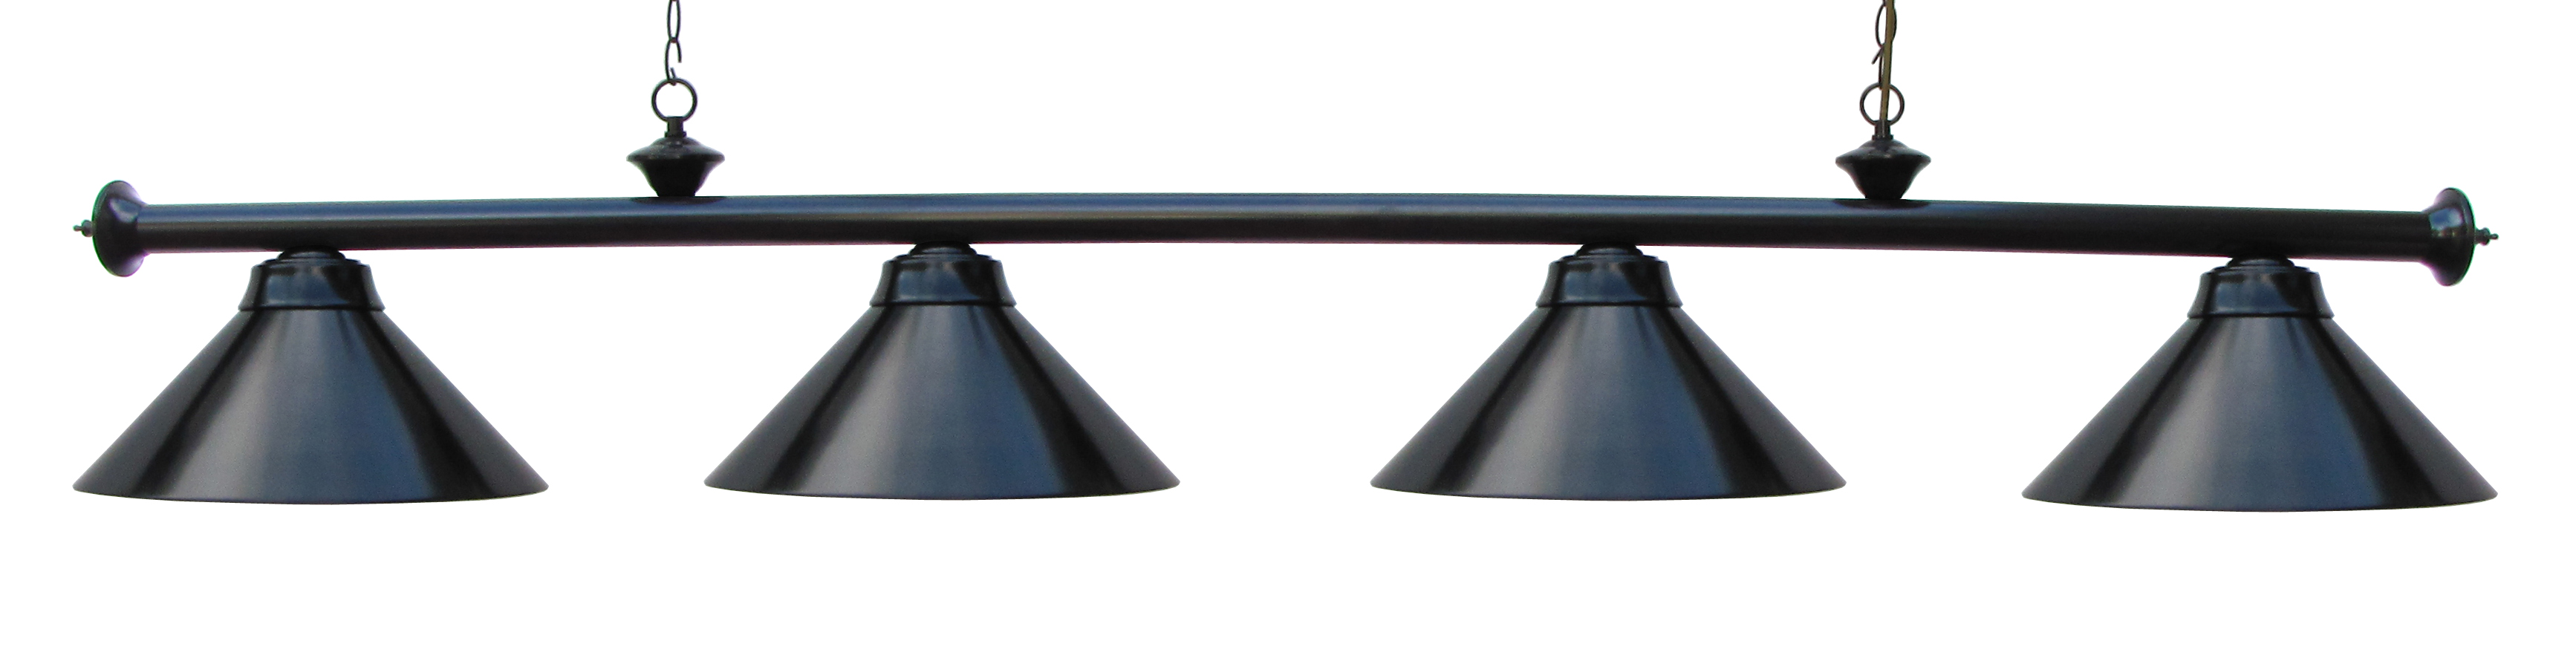 "72"" Pool Table Light Pool Table Light Black With Metal Shades For 9' Table by"